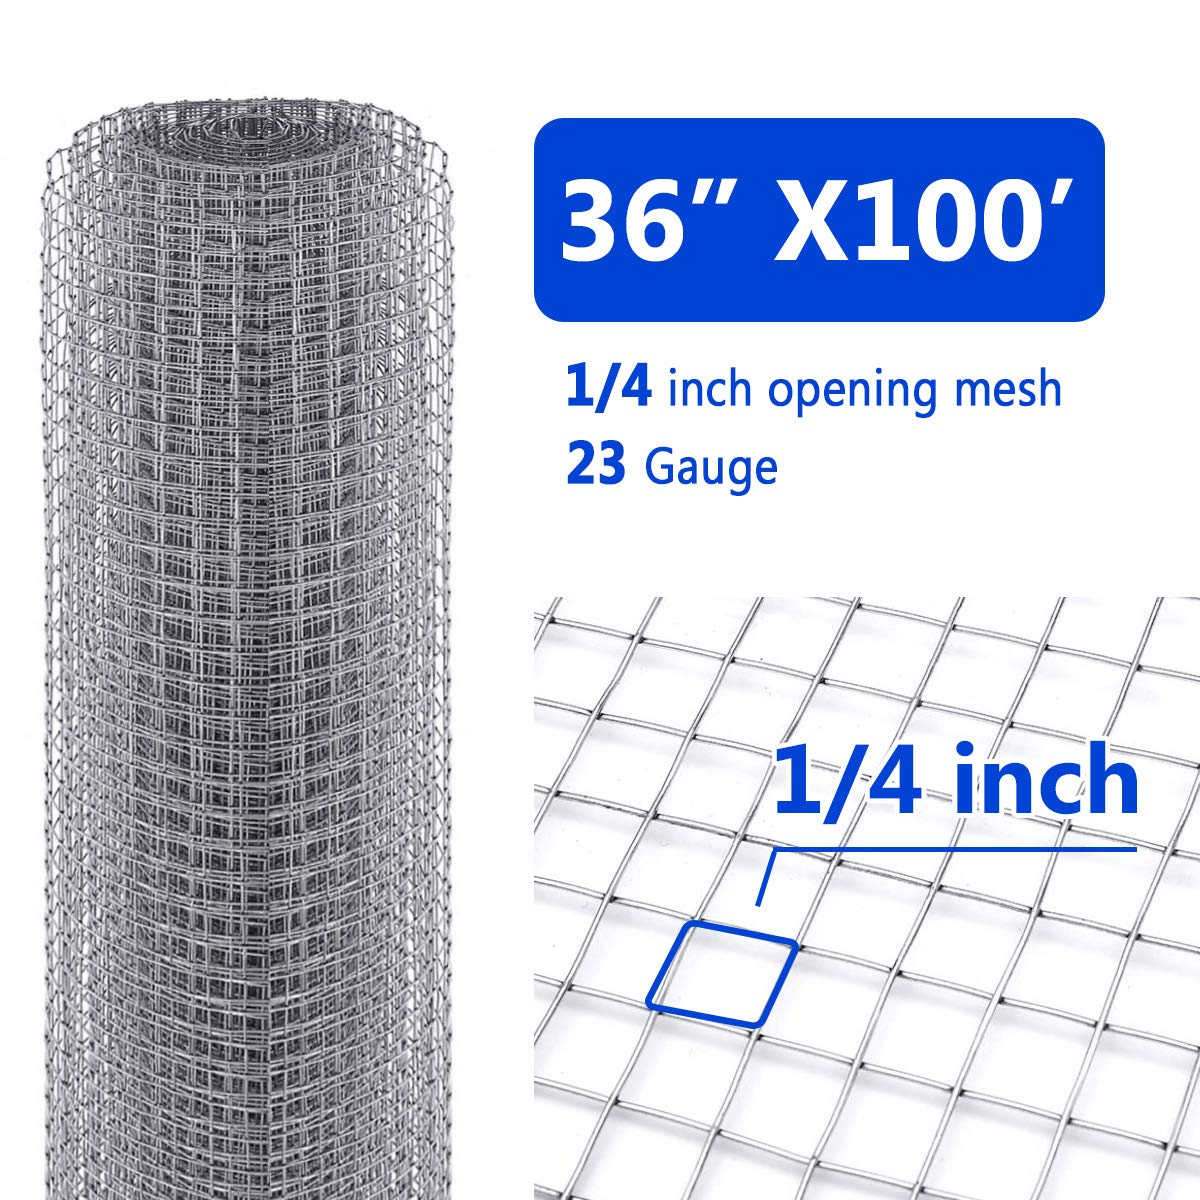 Tooca Hardware Cloth 1/4inch Wire Mesh 36in x 100ft, 23 Gauge Hot-Dipped Galvanized Material Fence Wire Mesh for Chicken Coop/Run/Cage/Pen/Vegetables Garden and Home Improvement Project by TOOCA